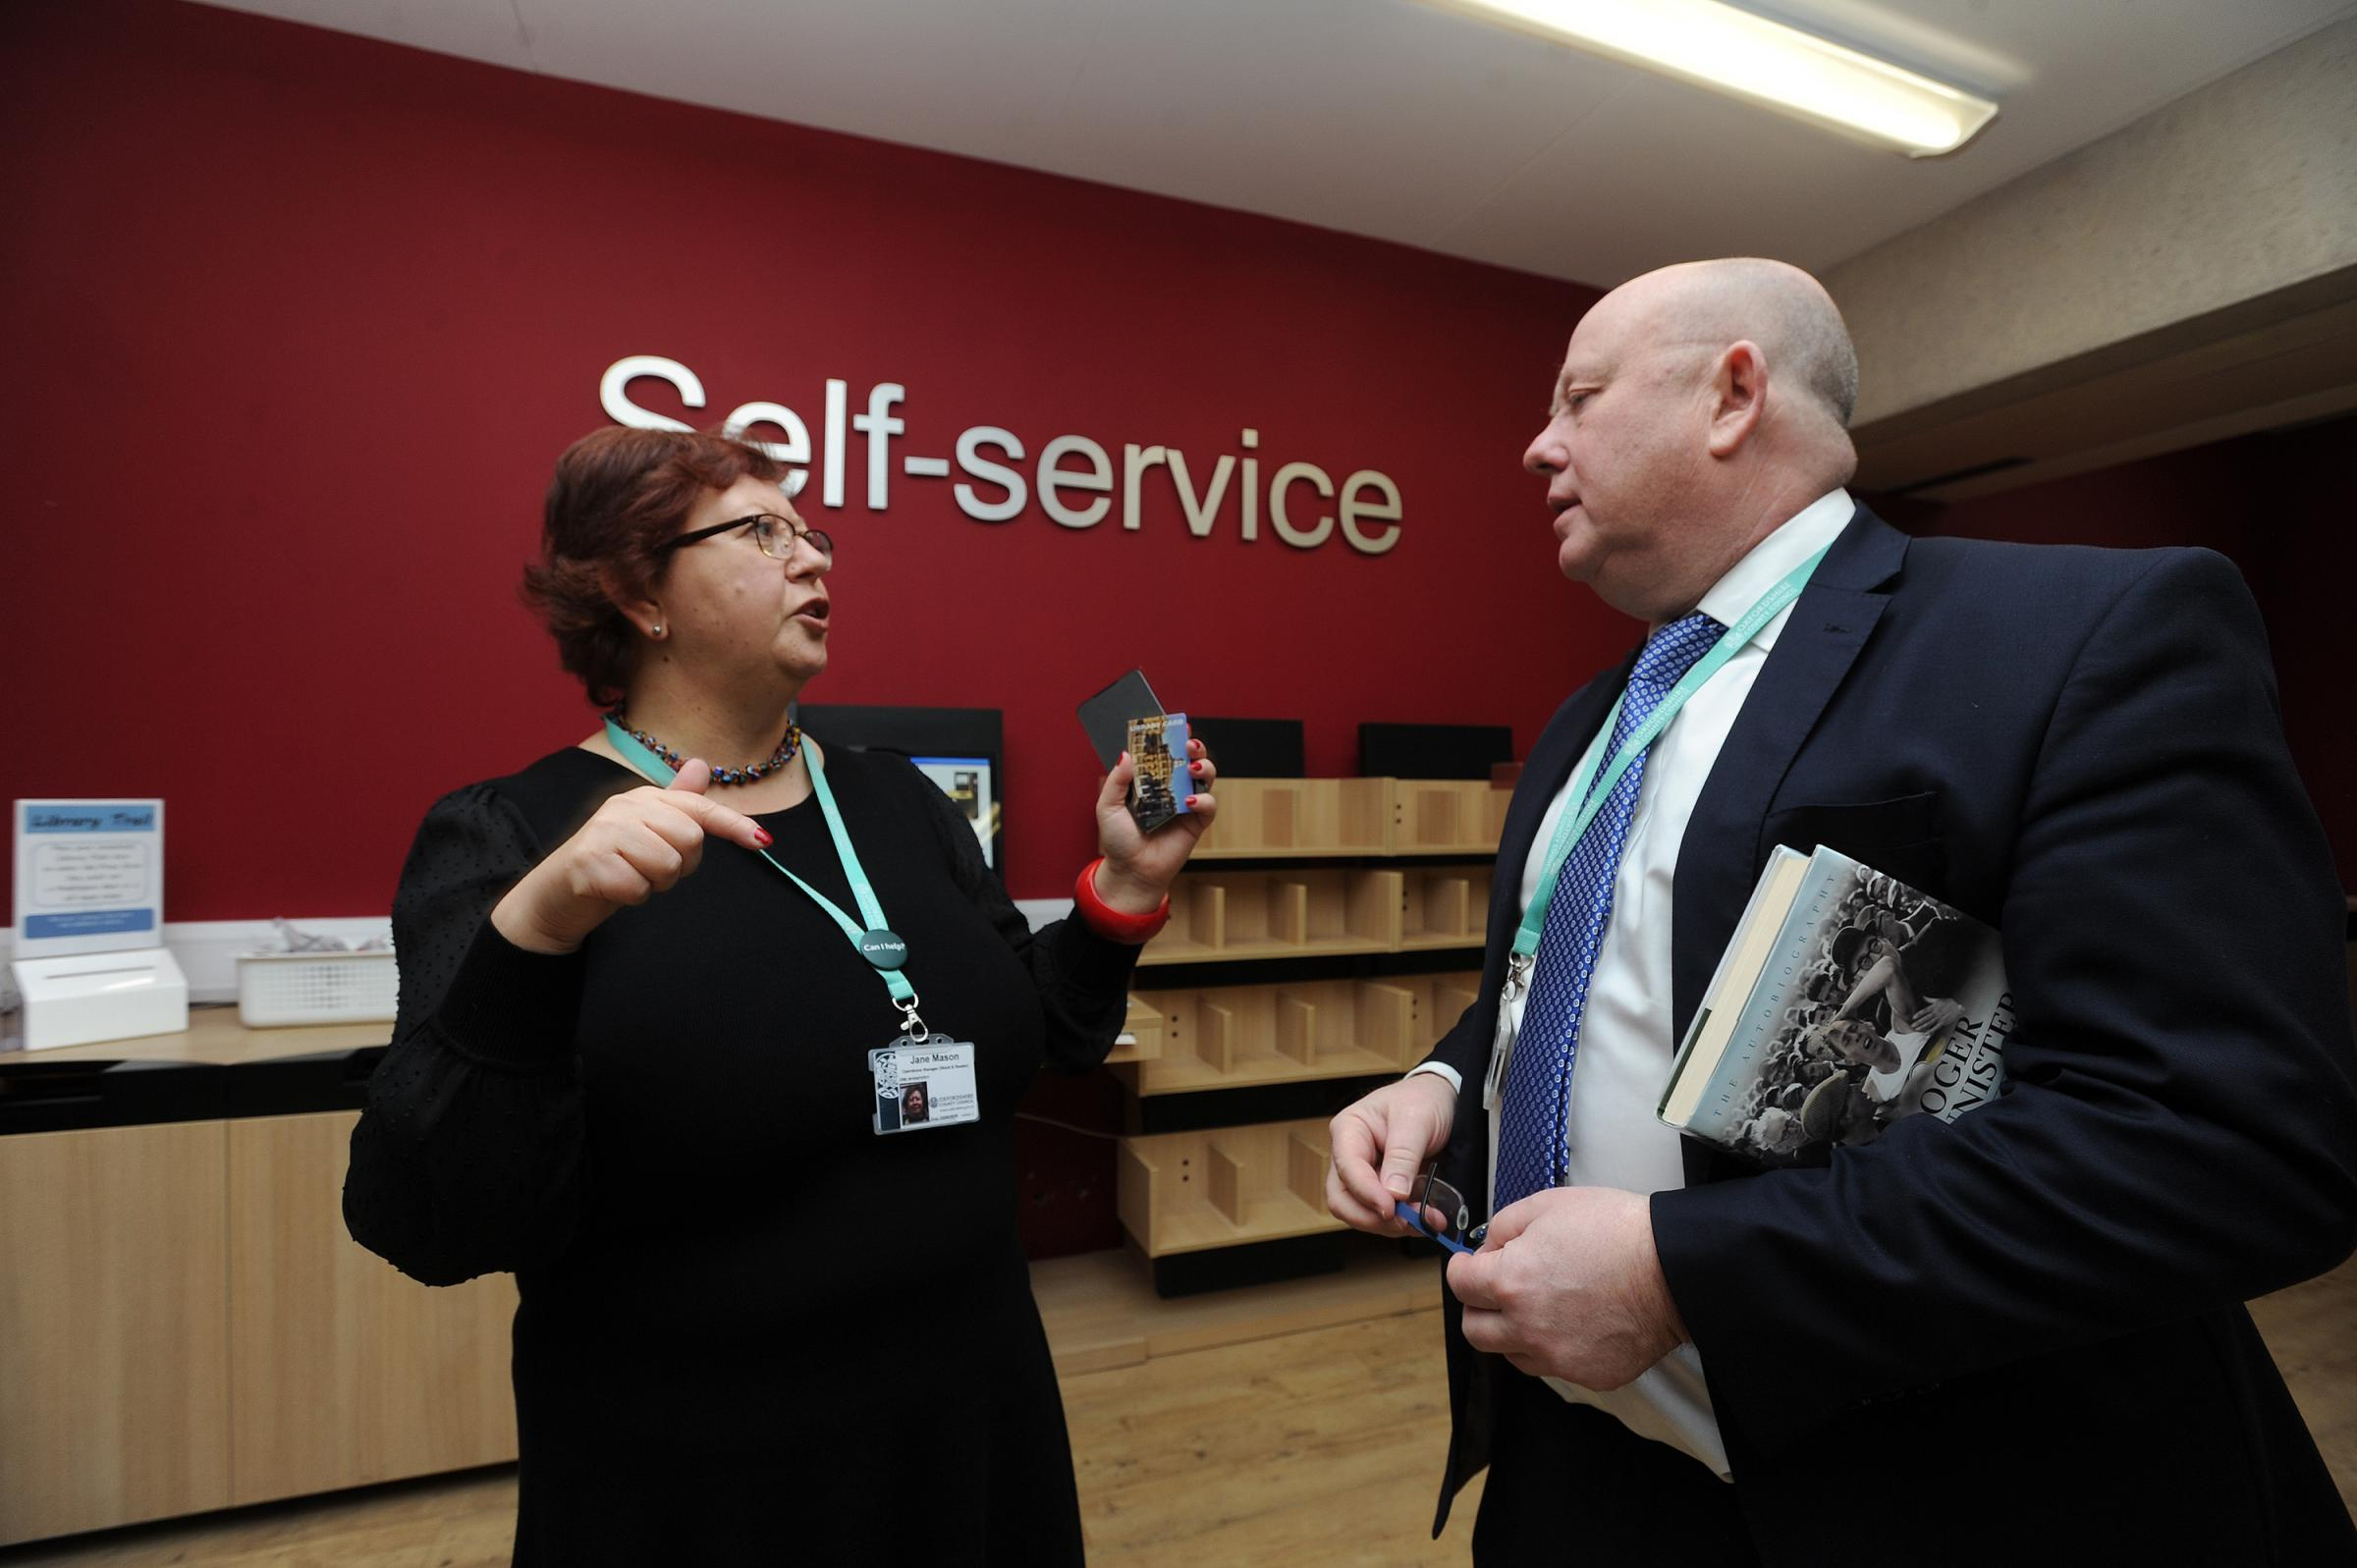 Oxfordshire County Council leader Ian Hudspeth chats with one of his council's employees – Oxford Central Library manager Jane Mason. Picture: Jon Lewis